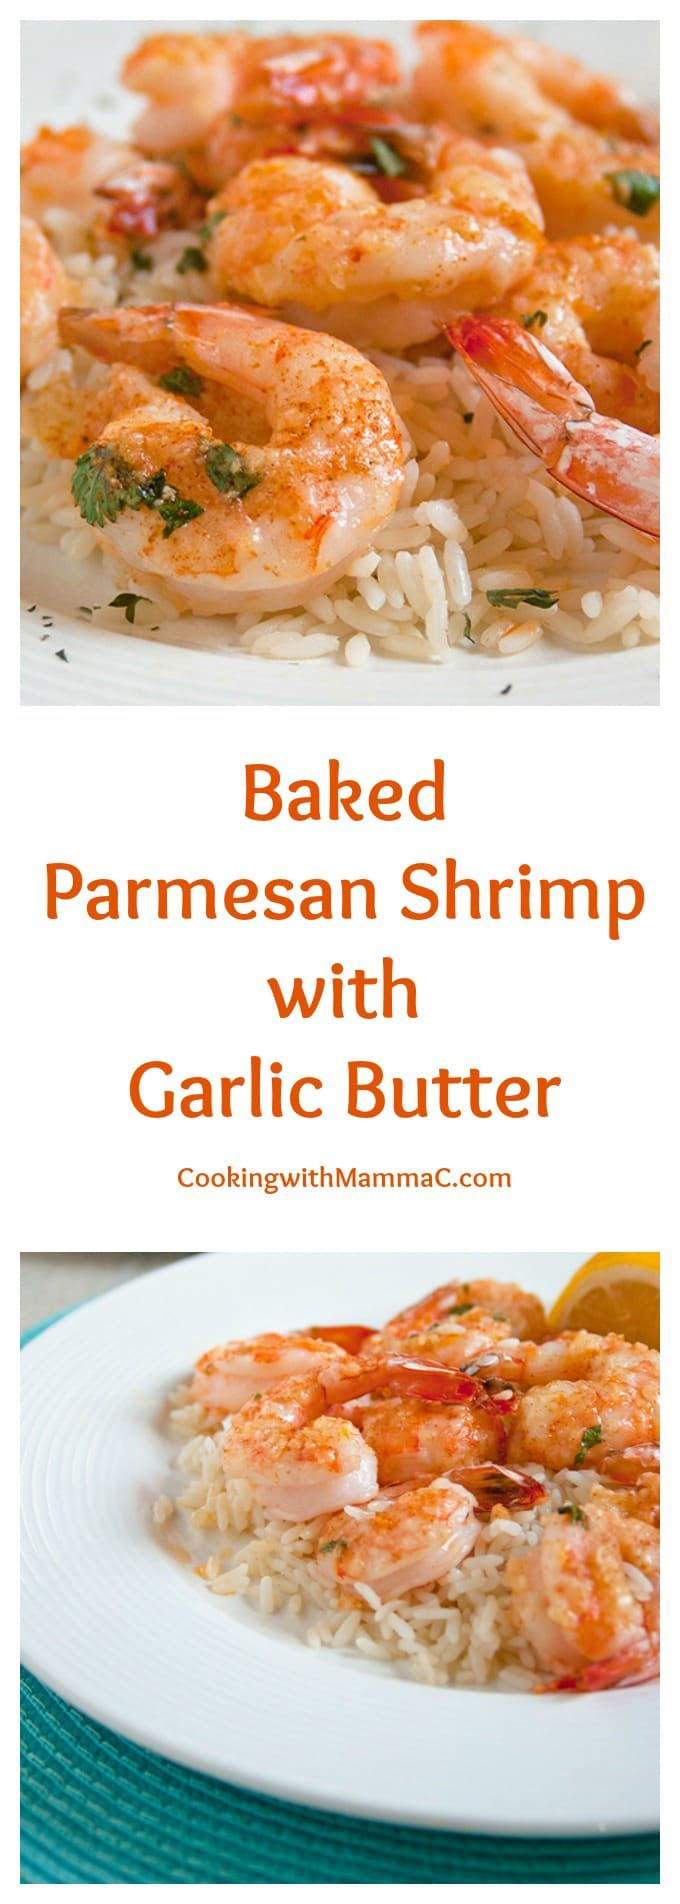 Baked Parmesan Shrimp with Garlic Butter is scrumptious and gluten free! It's …